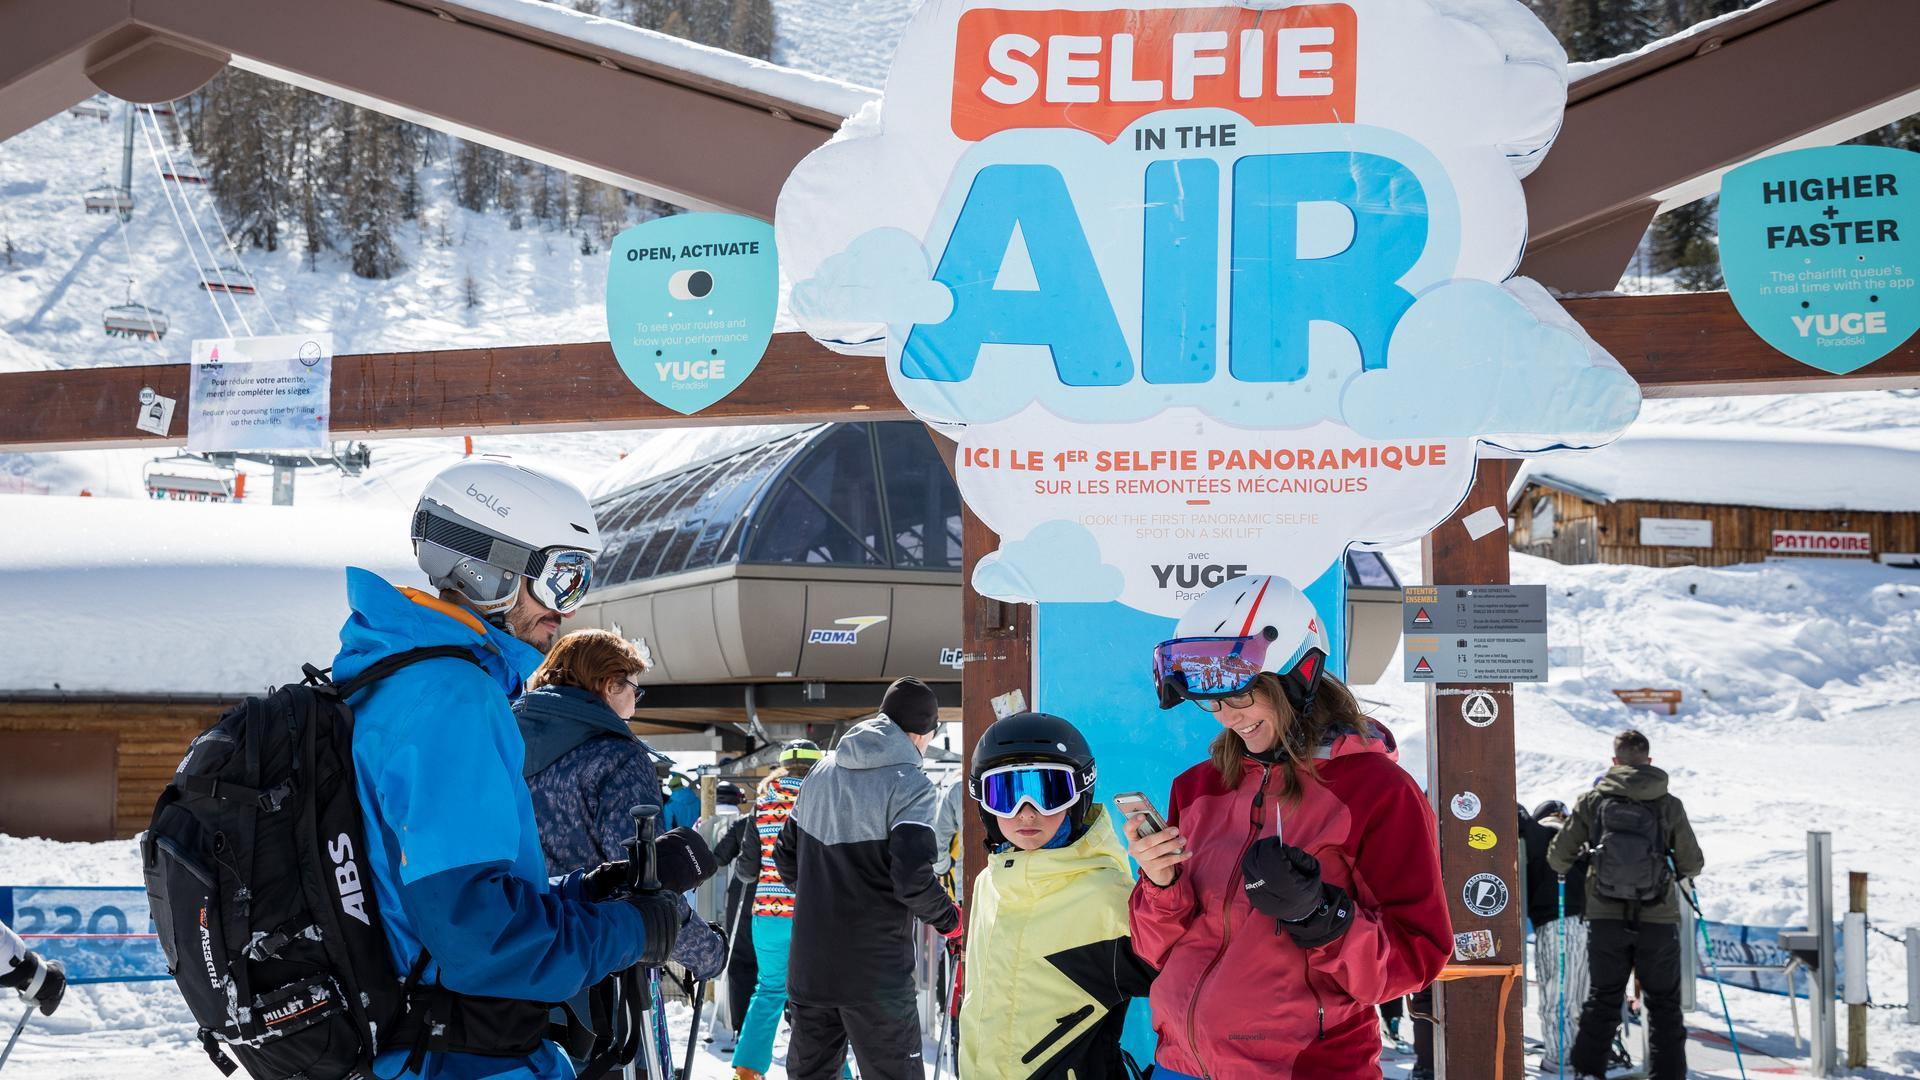 Selfie in the air télésiège La Plagne